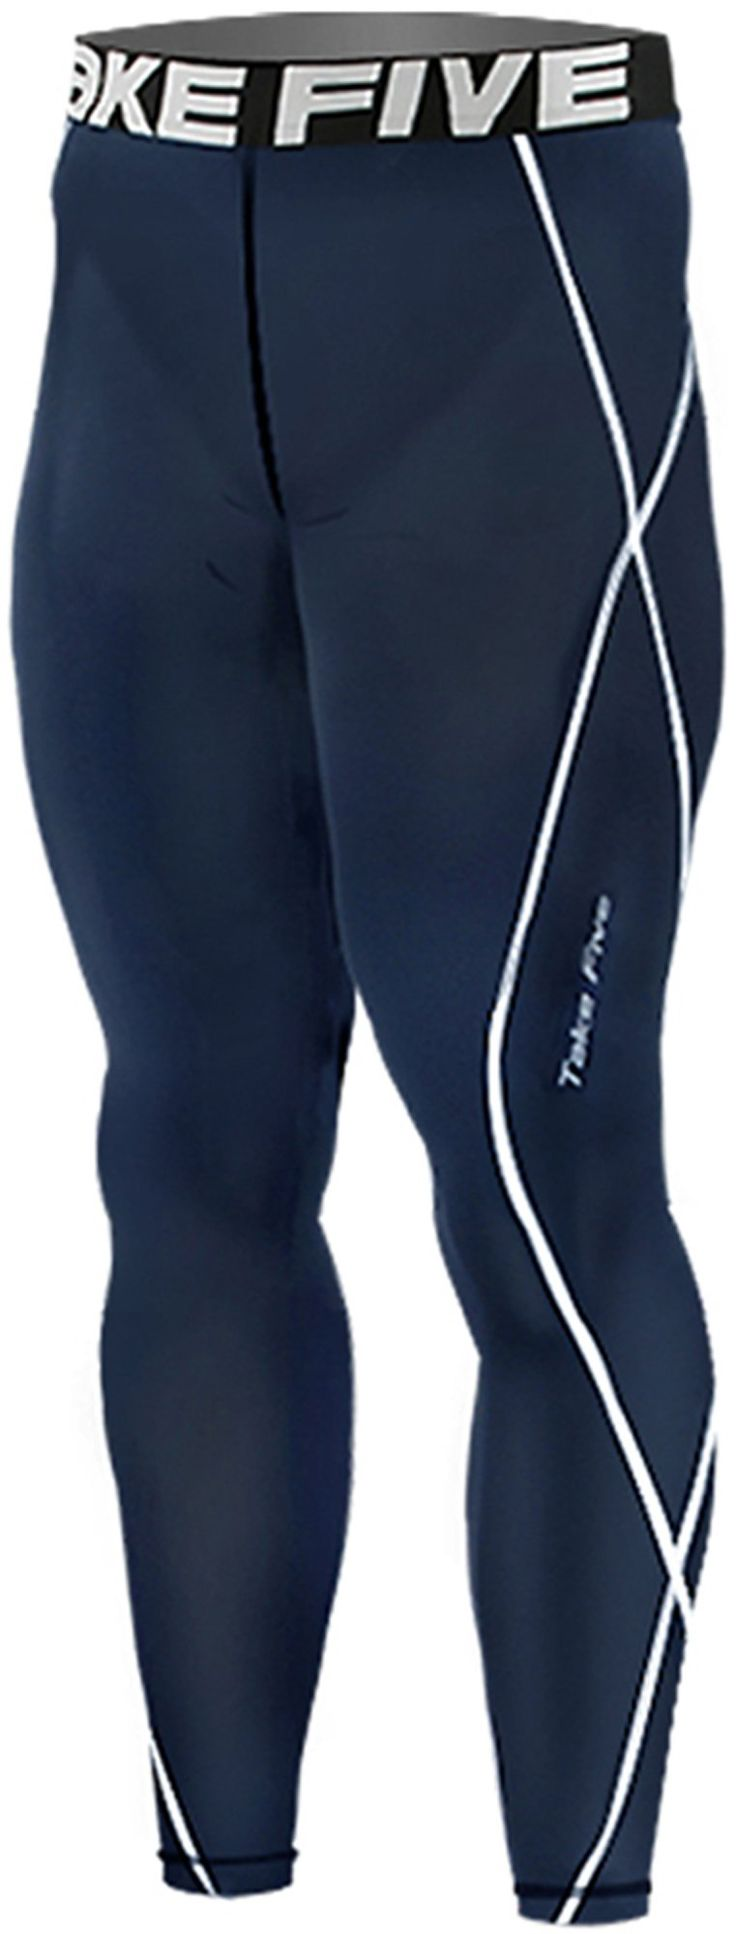 New 018 Take Five Skin Tights Compression Leggings Base Layer Navy Running Pants Mens S - 2xl (M). Men's long Pants compression Tights made using Take Five technology. Compression fit bolsters muscle support and increases circulation. UVA/UVB Protection - Take Five compressoin protects your skin from UVA/UVB radiation during your outdoor workout. Great for skiing, snowboarding, training, competing, and all weather sports and activities. Machine washable.